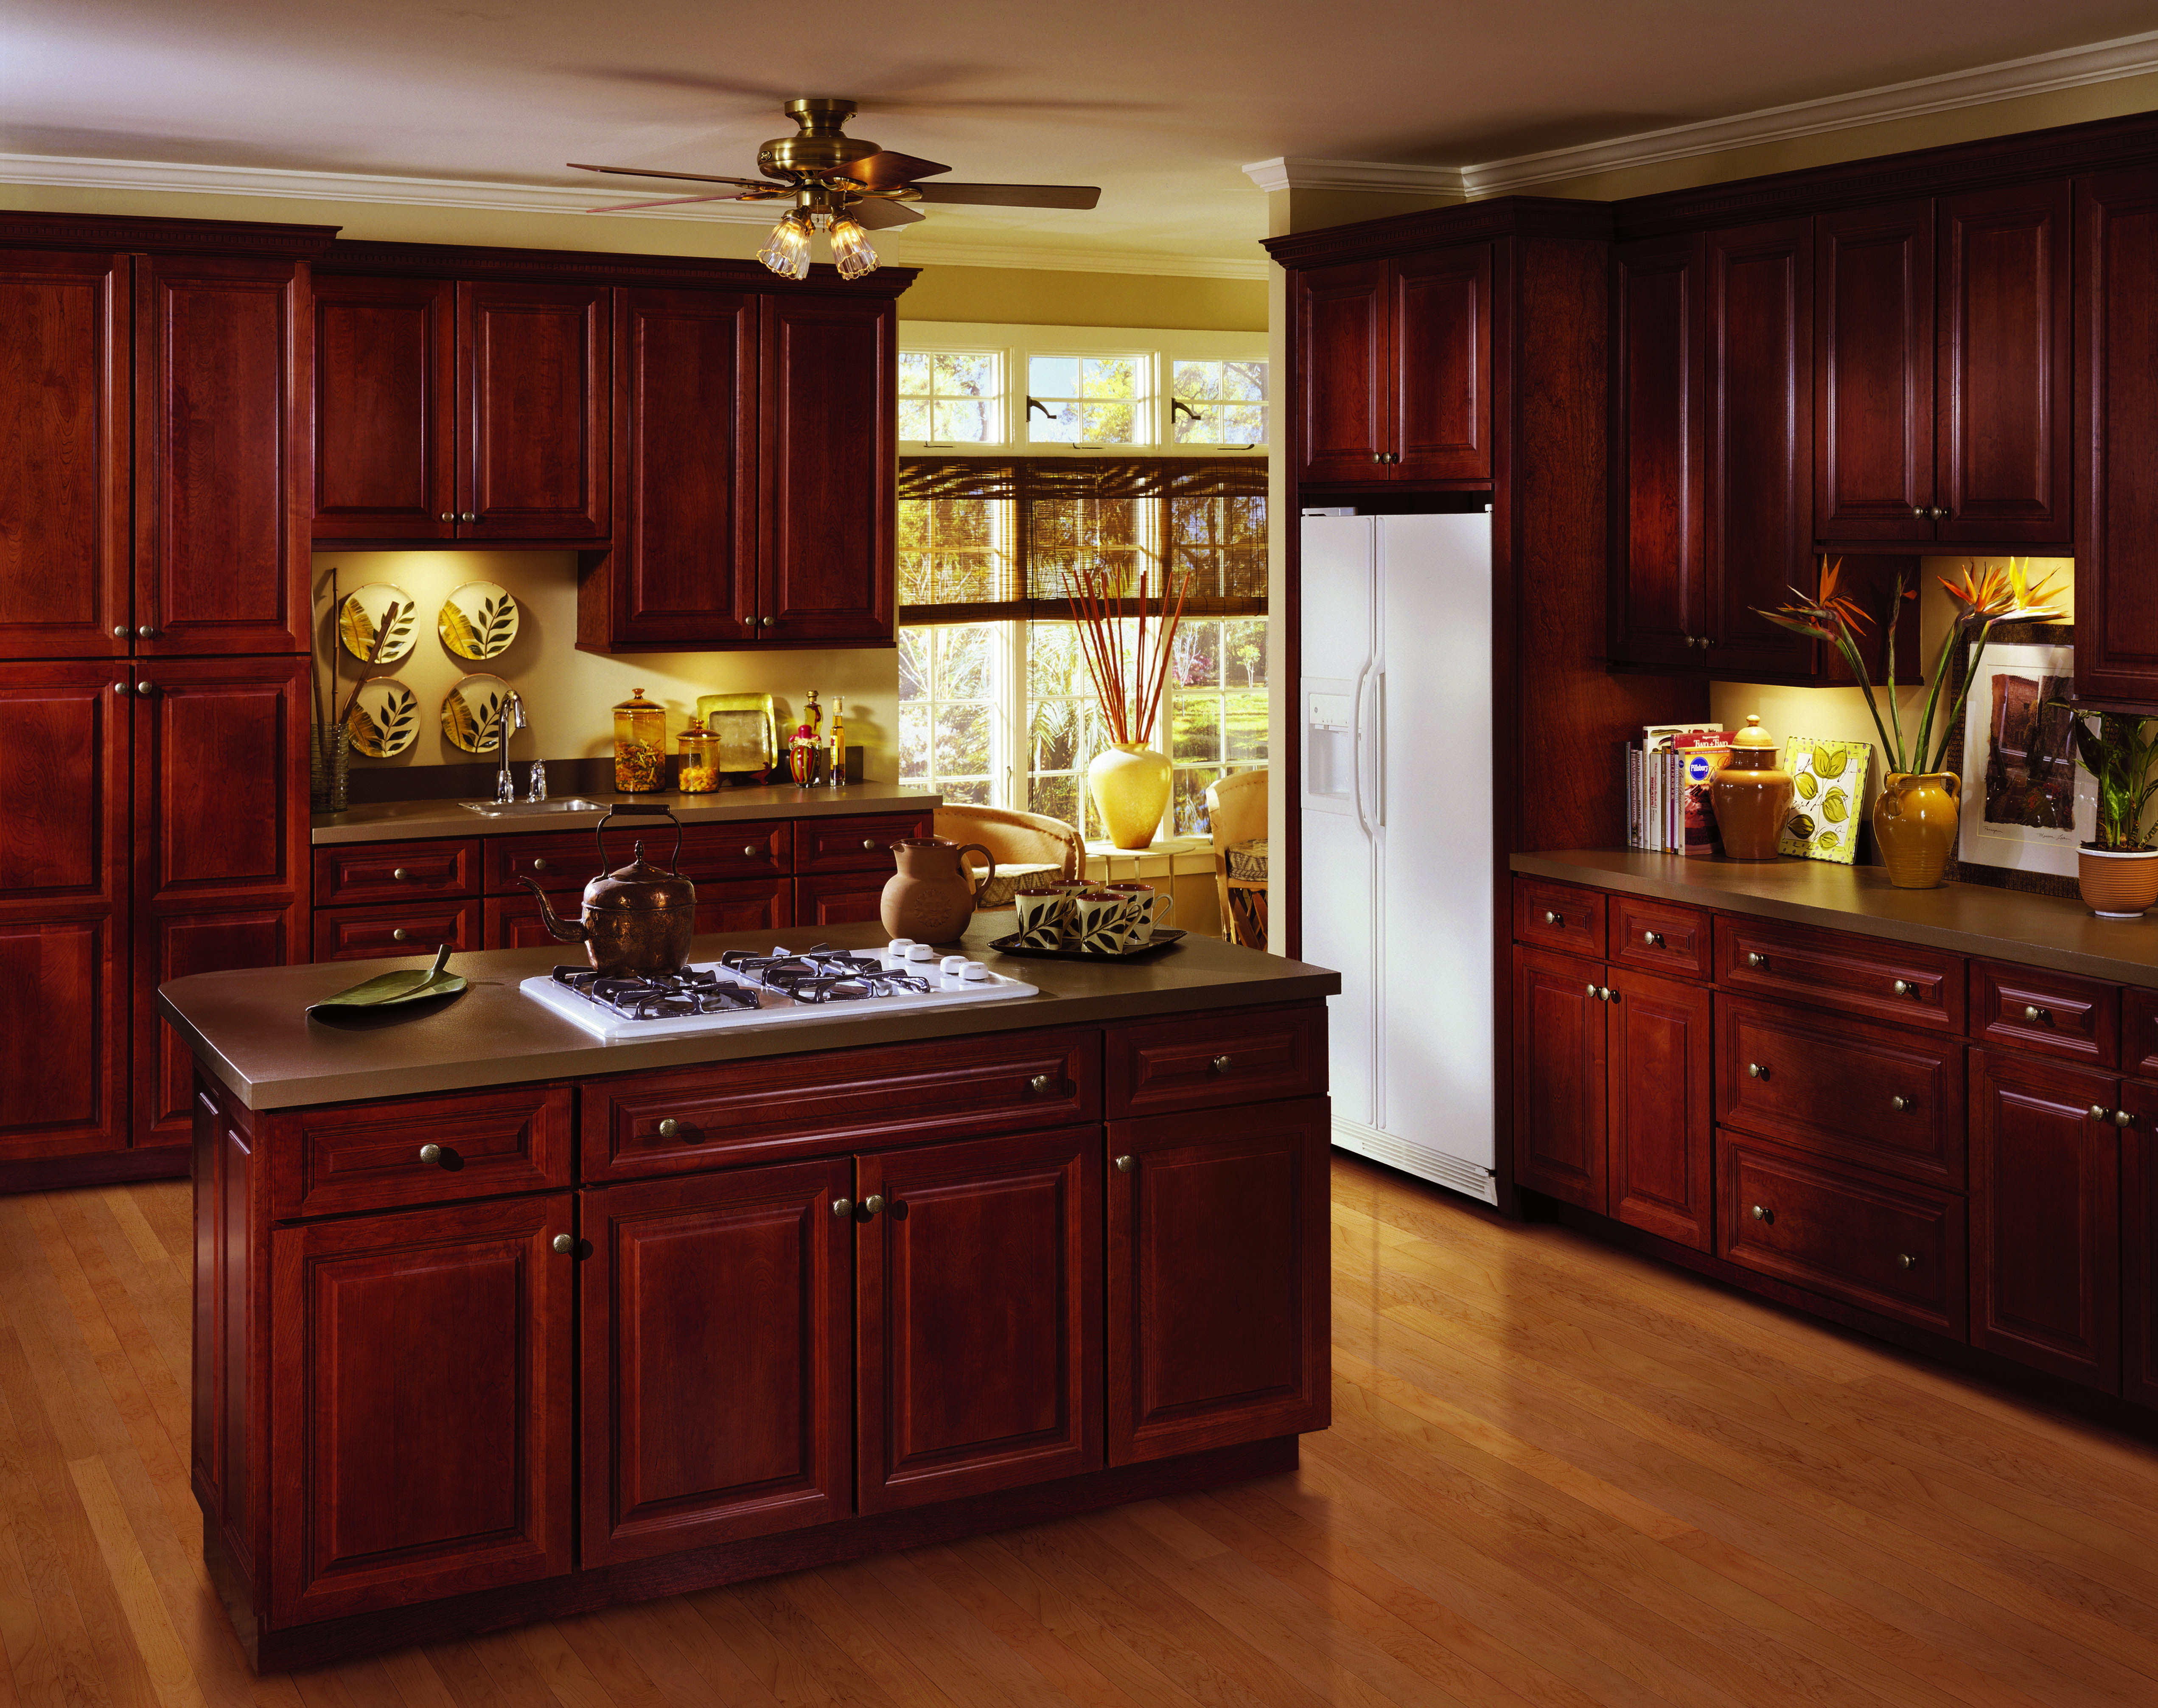 Pin By Express Kitchens On New Star Cabinetry Door Styles Kitchen Dinning Room Kitchen Cabinets Used Kitchen Cabinets